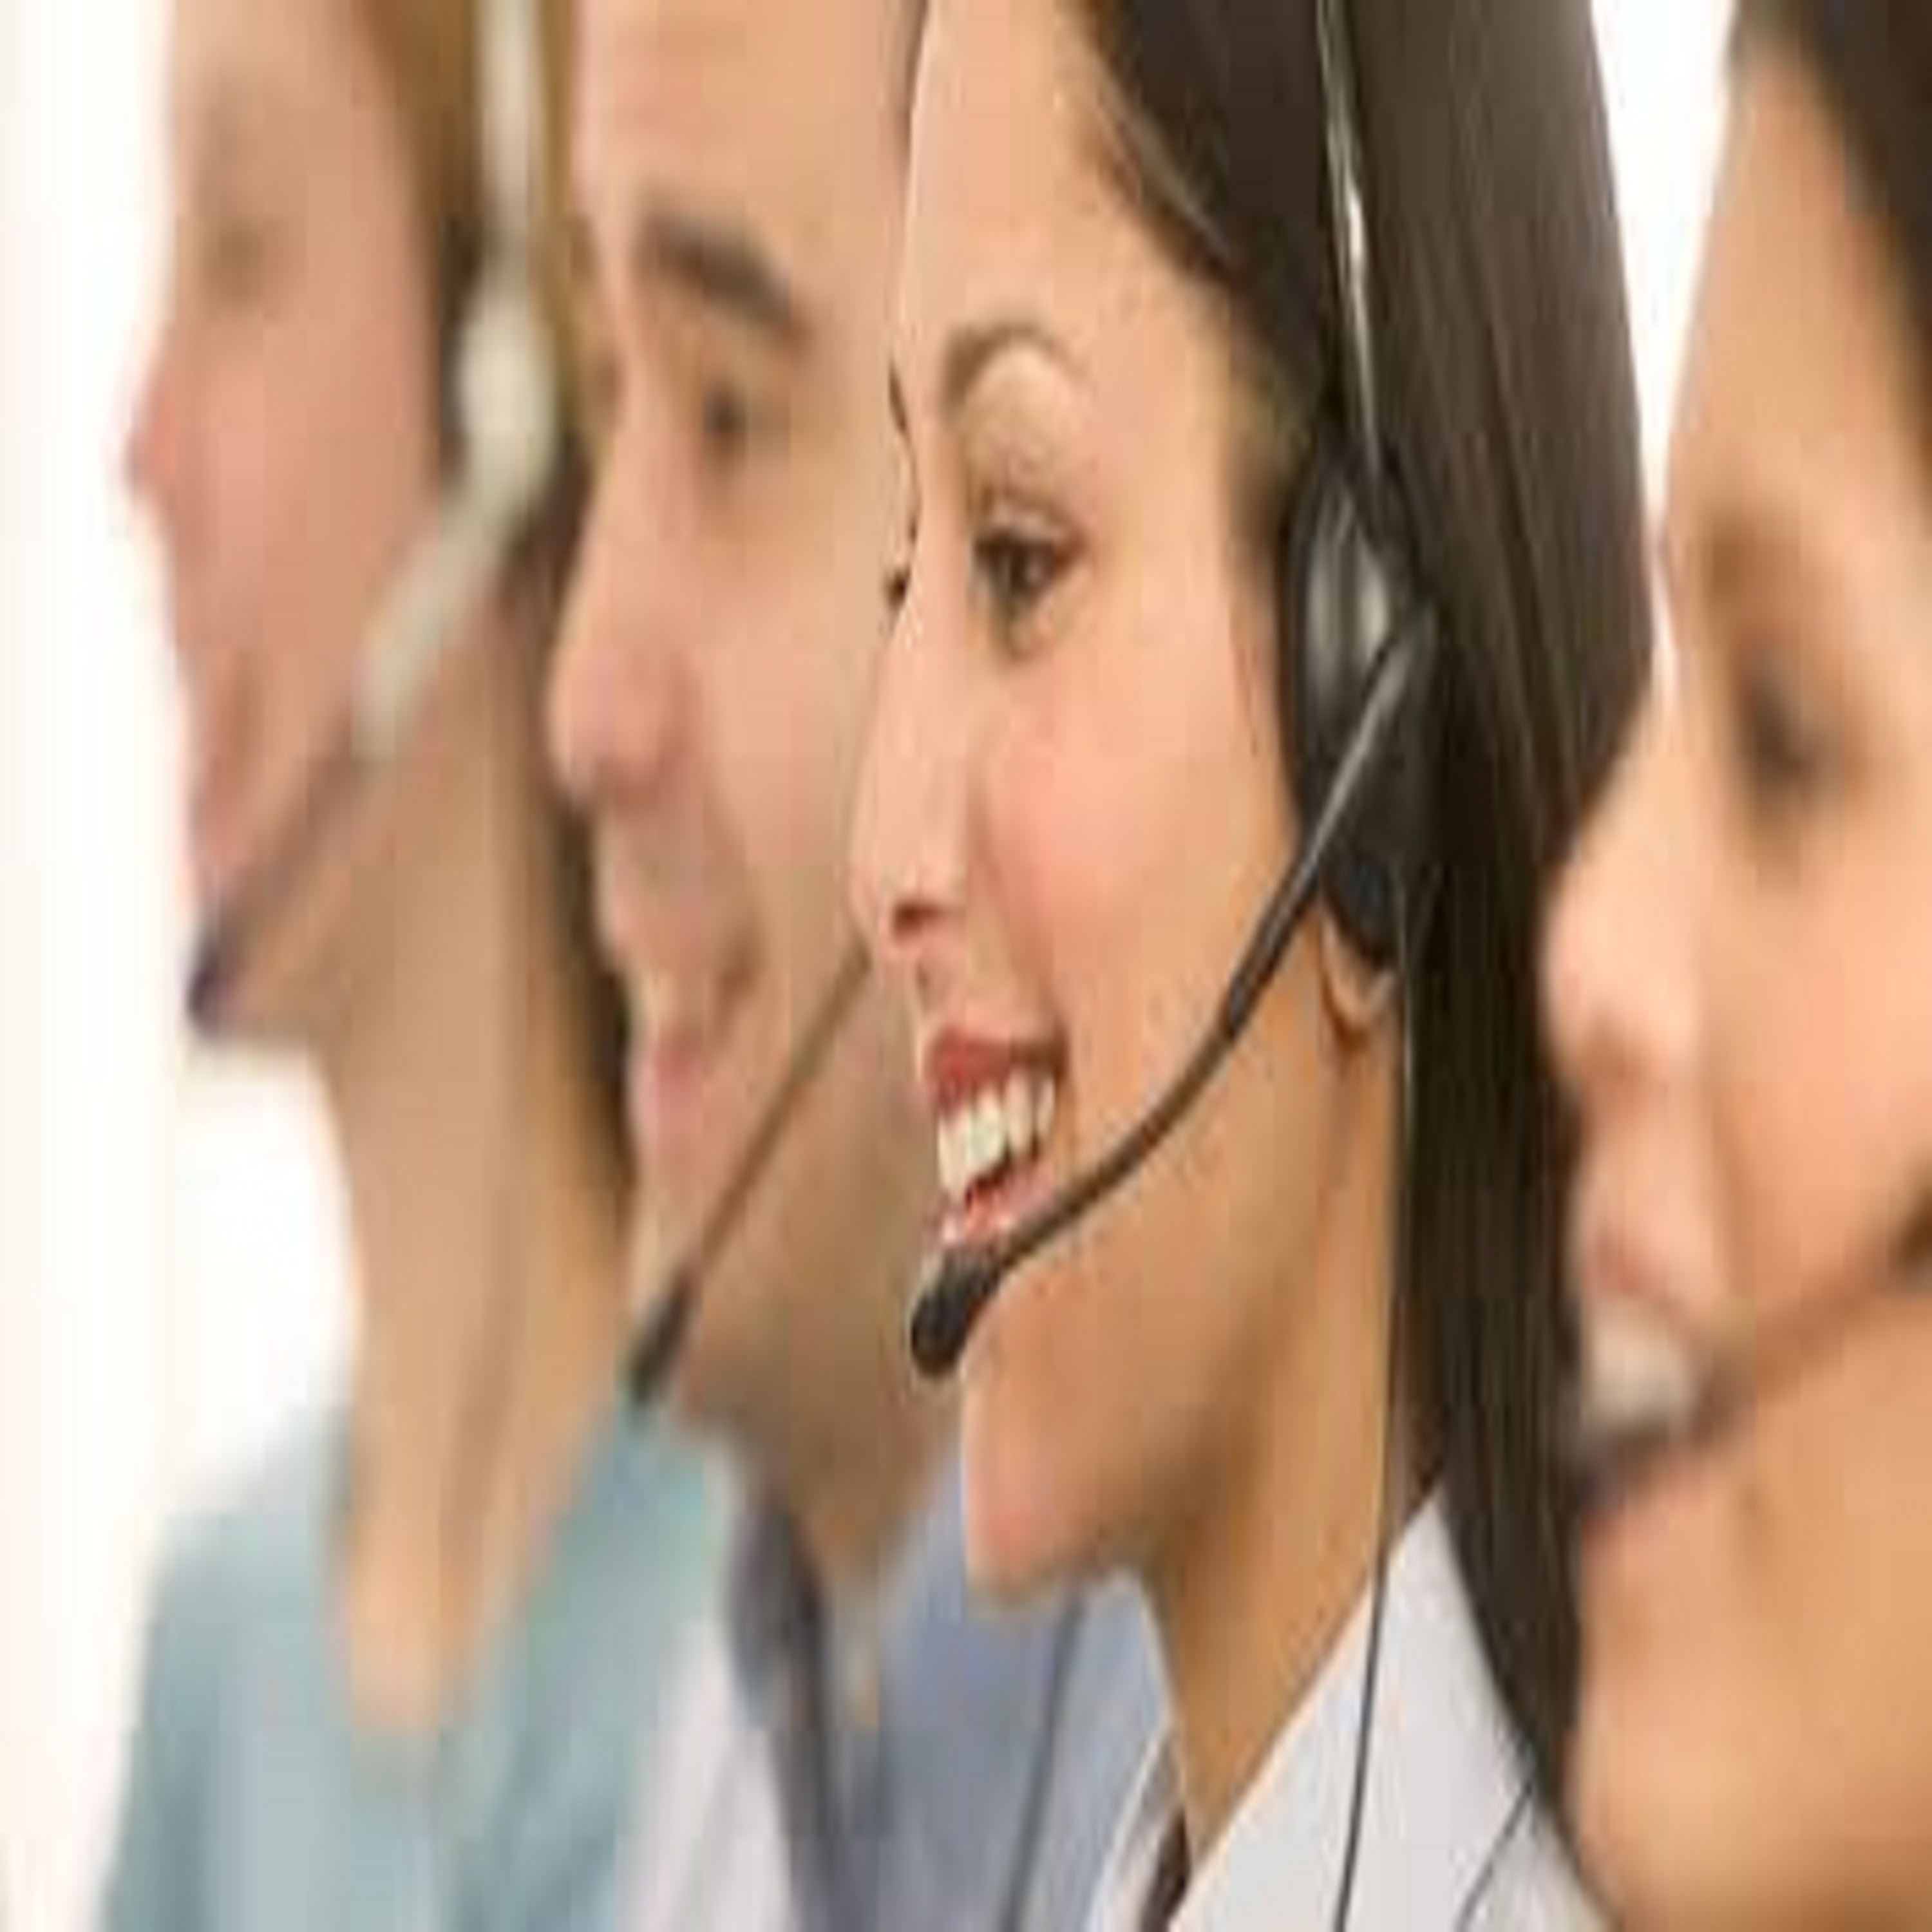 Free stock photo of medical answering service houston, medical answering services, medical call answering service